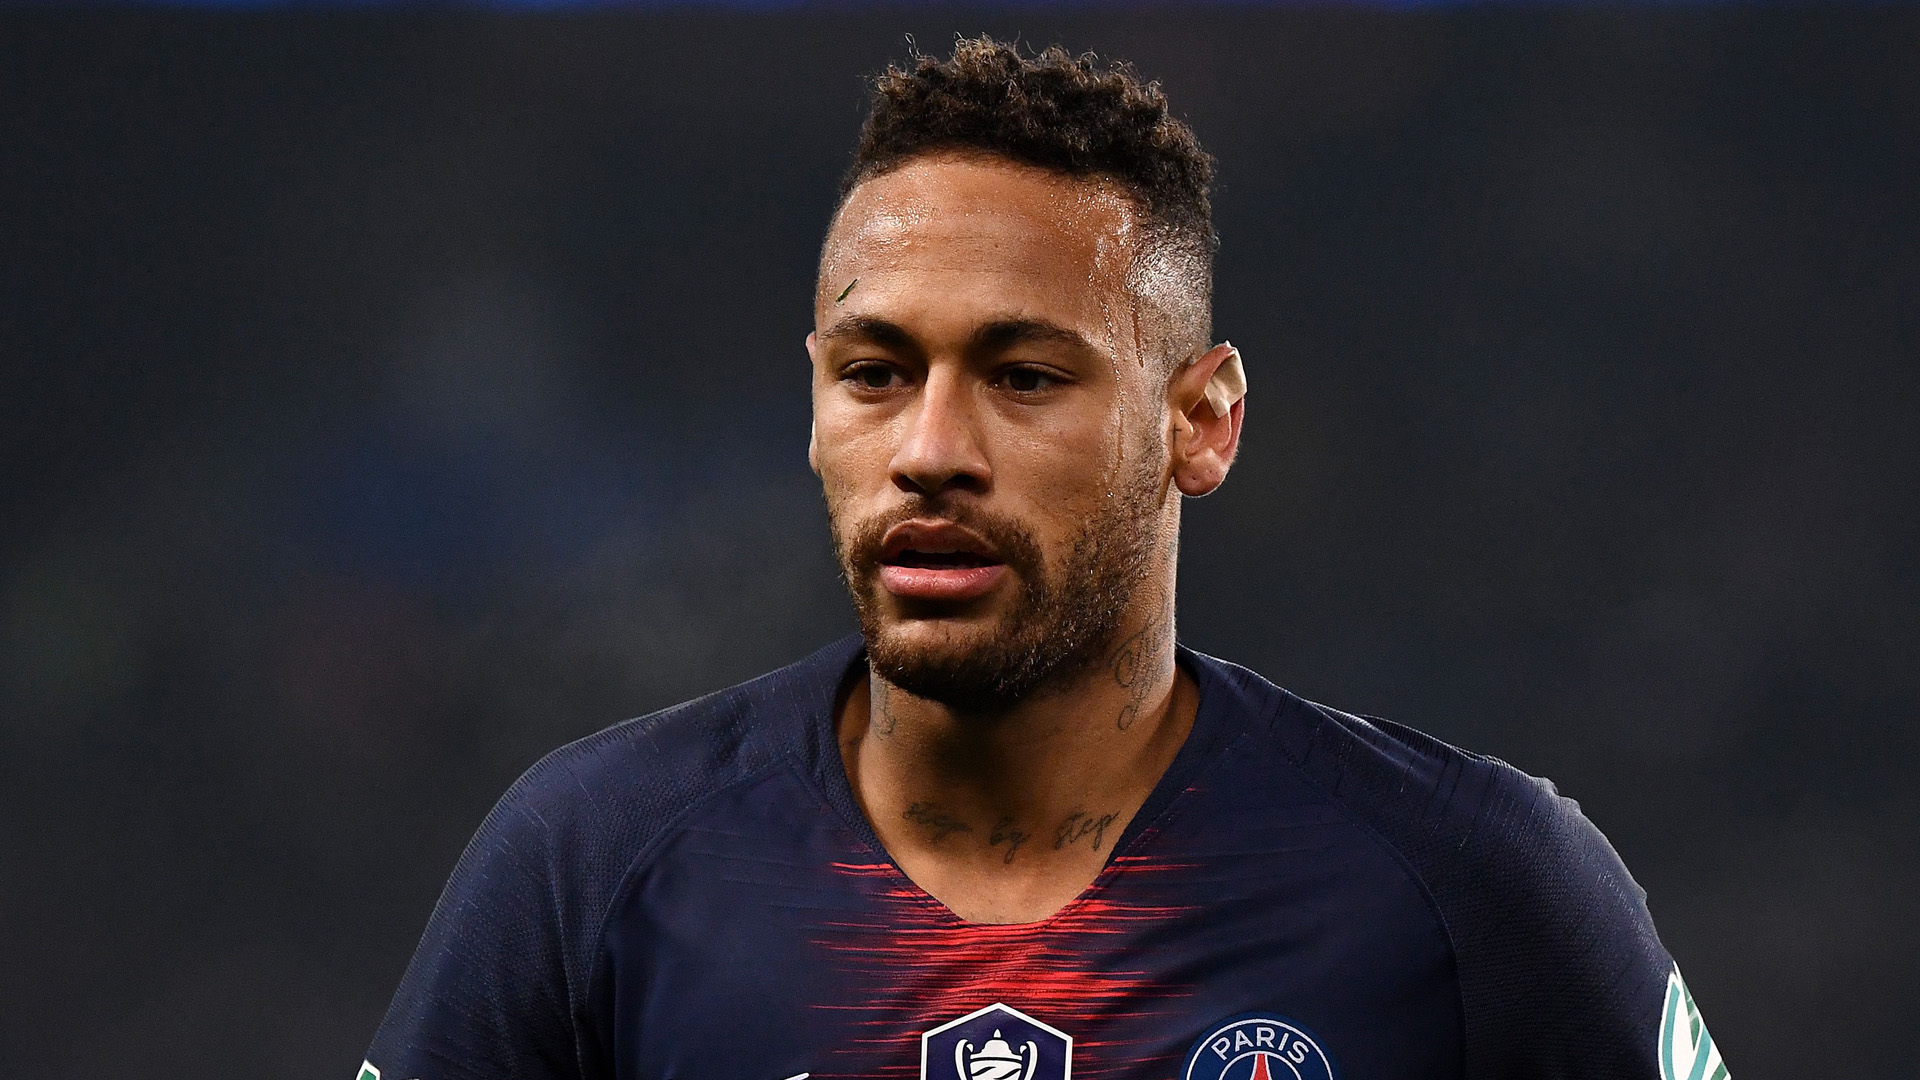 Paris Saint-Germain's Brazilian forward Neymar looks on during the French Cup round of 32 football match between Paris Saint-Germain (PSG) and Strasbourg (RCS) at the Parc des Princes stadium in Paris on January 23, 2019. (Credit: FRANCK FIFE/AFP/Getty Images)